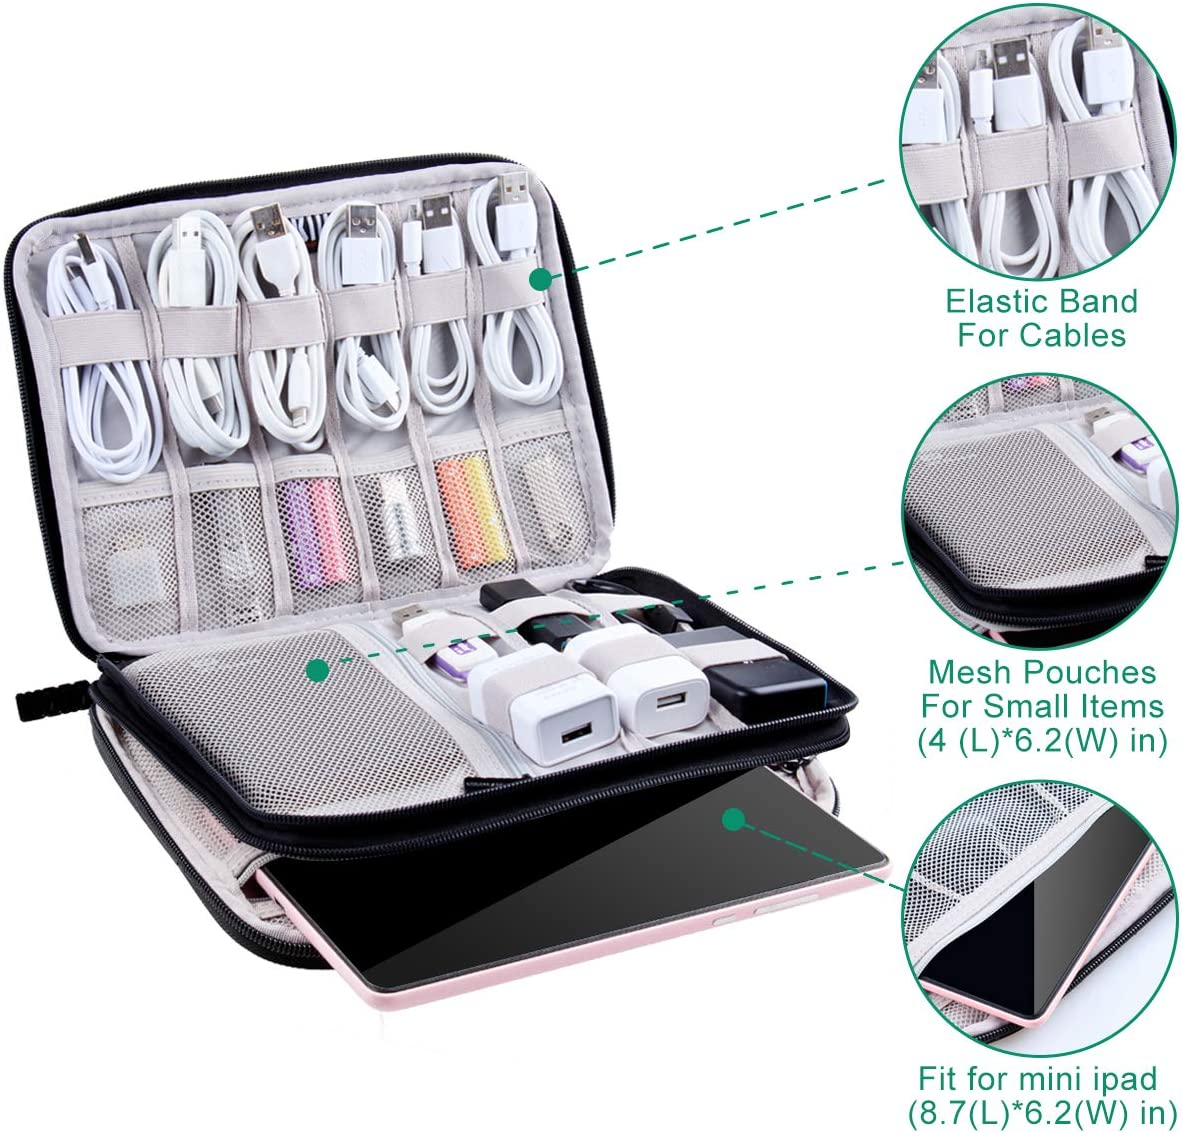 Electronic and Cord Organizer